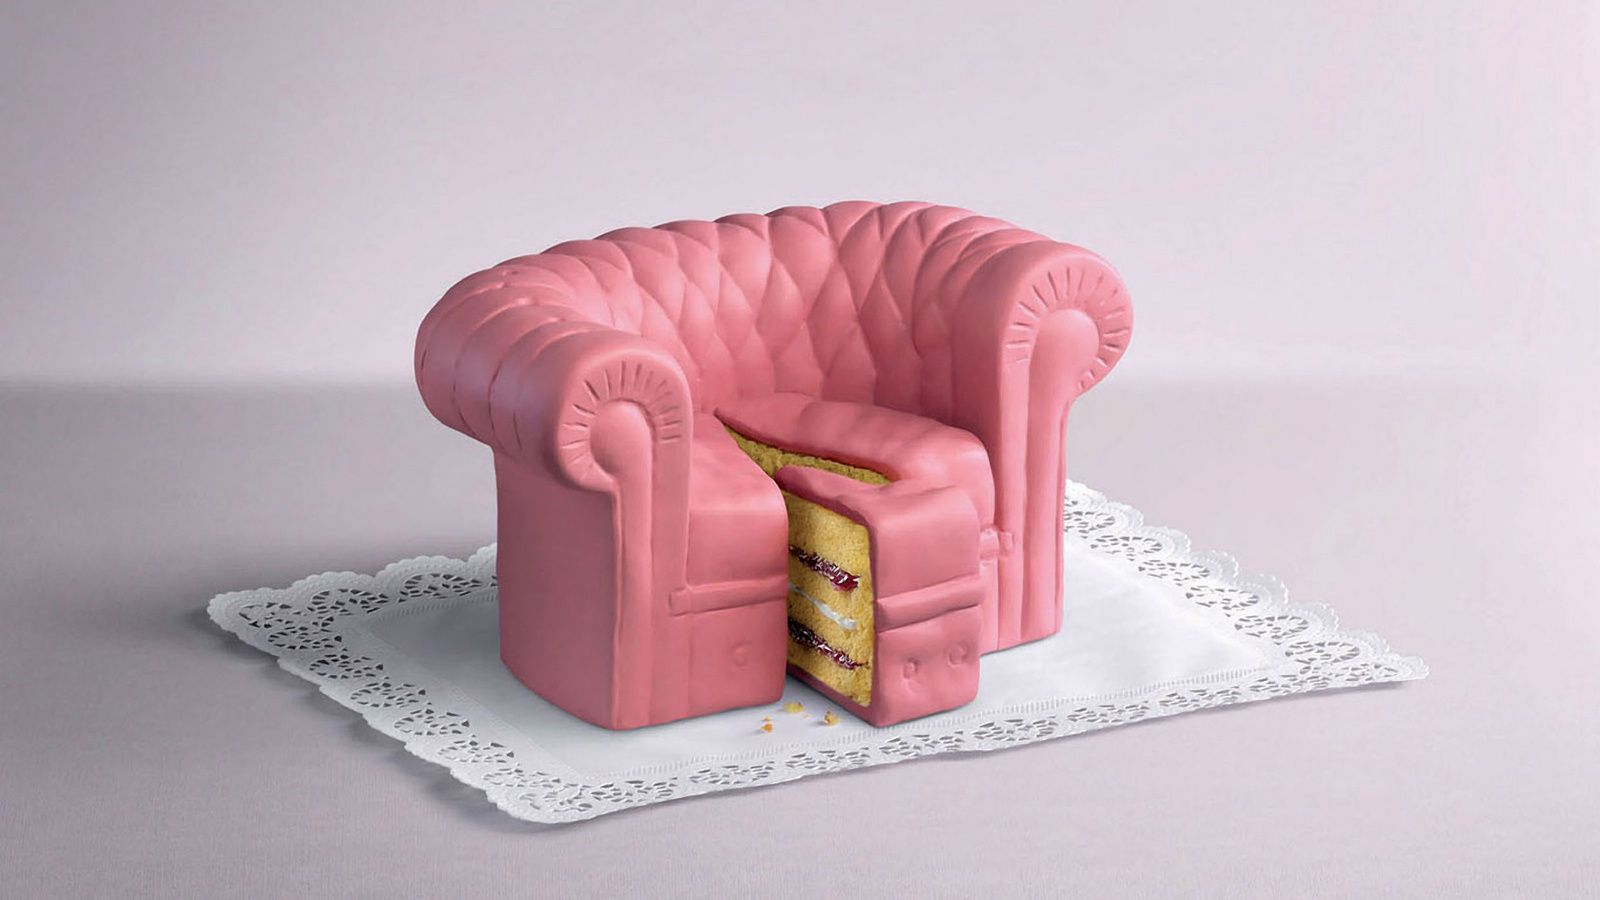 Dessert - Cakes - Création - Canapé rose - Wallpapers - Free